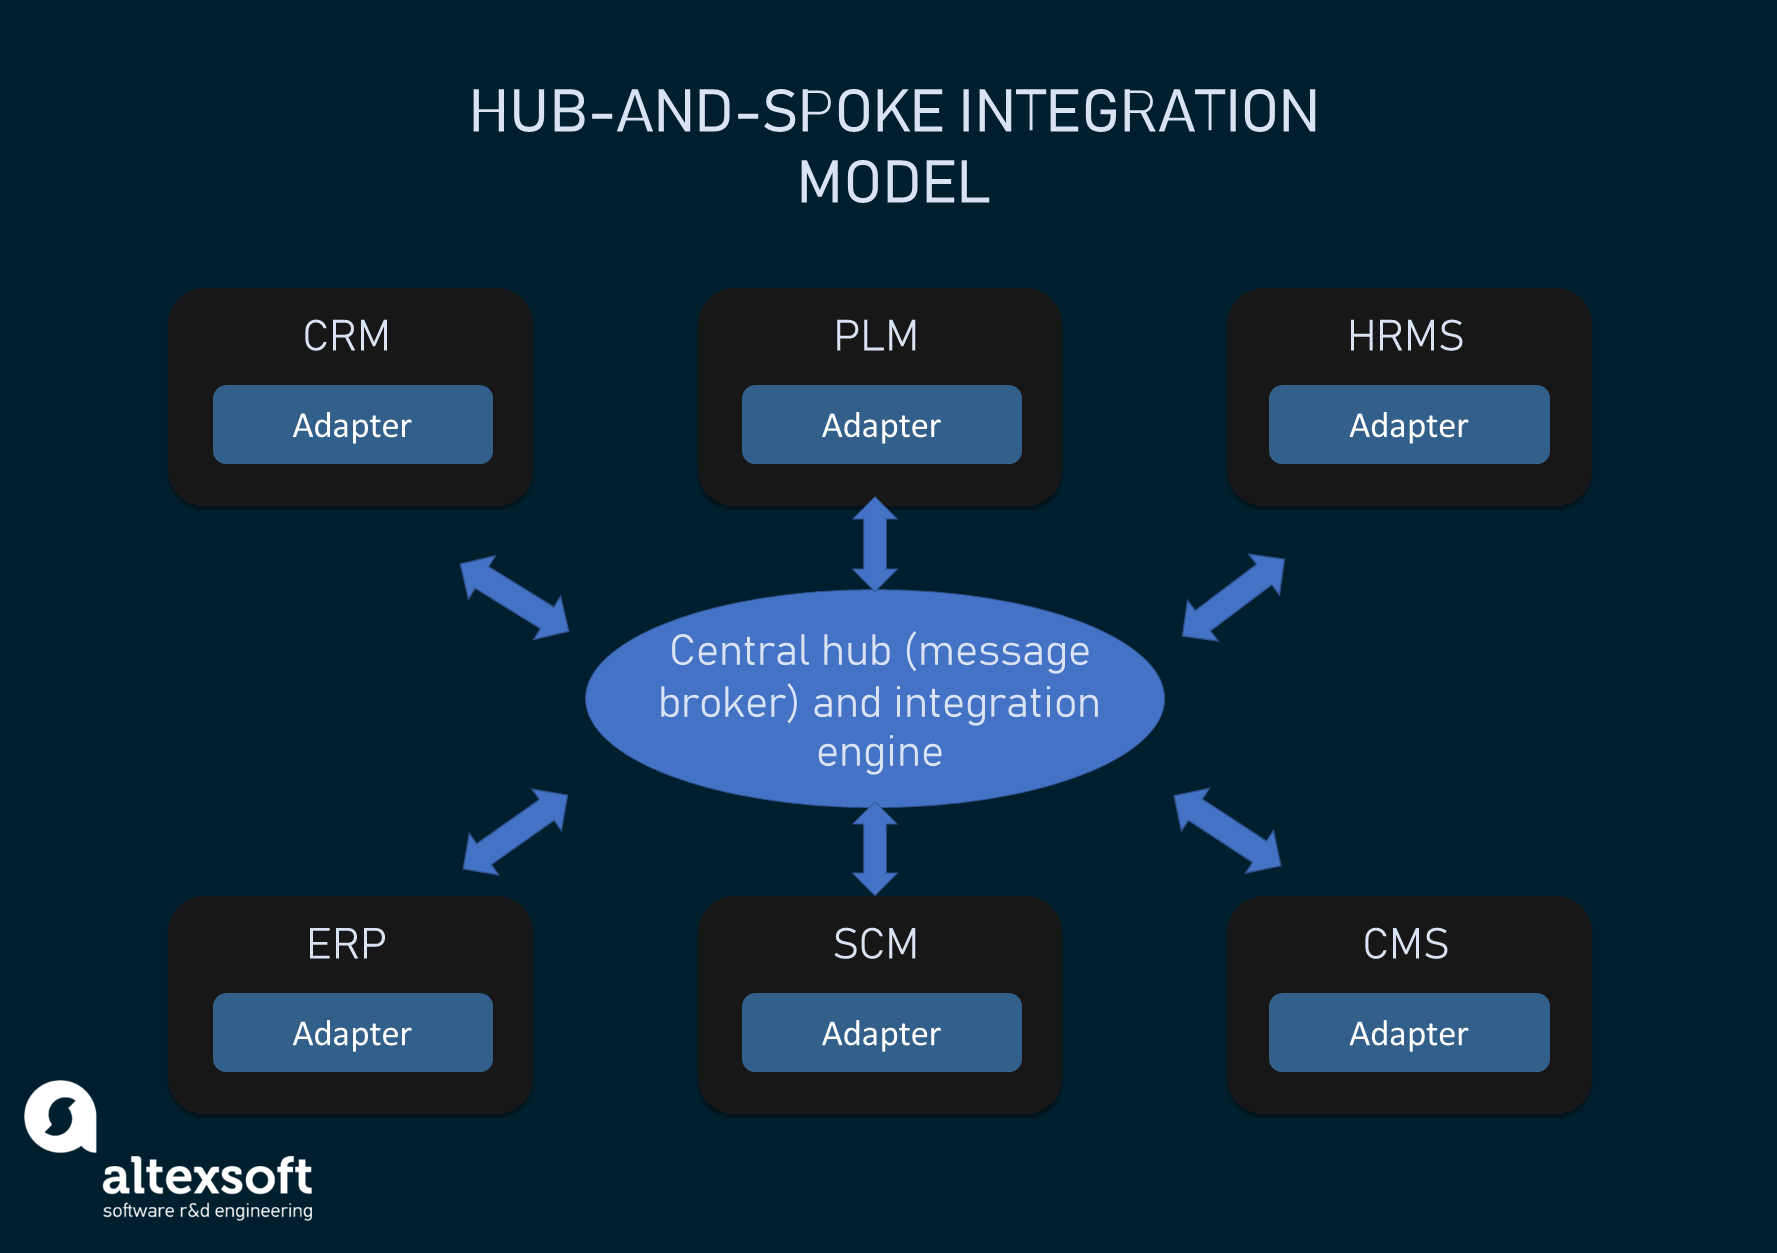 The hub-and-spoke integration architecture